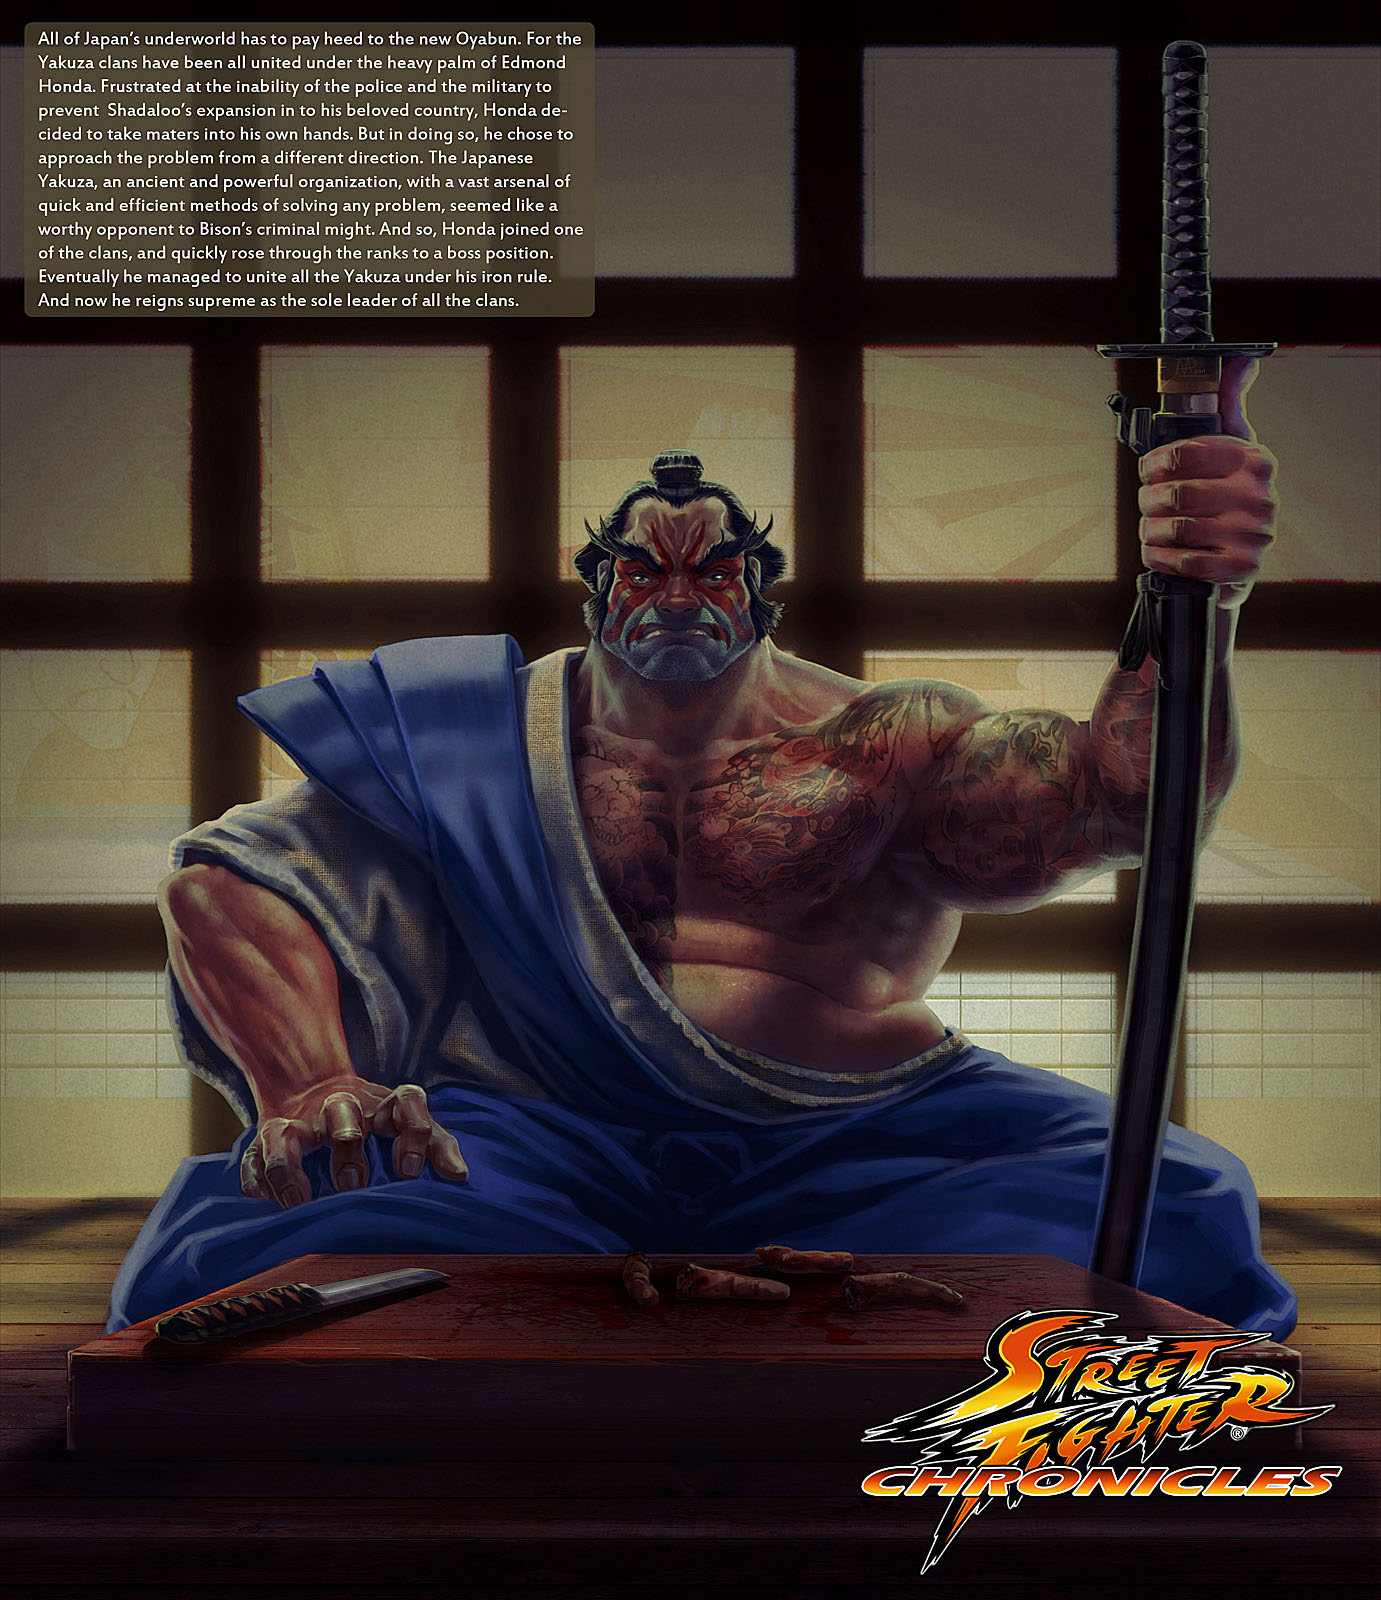 Street Fighter Chronicles artwork by Arman Akopian #1